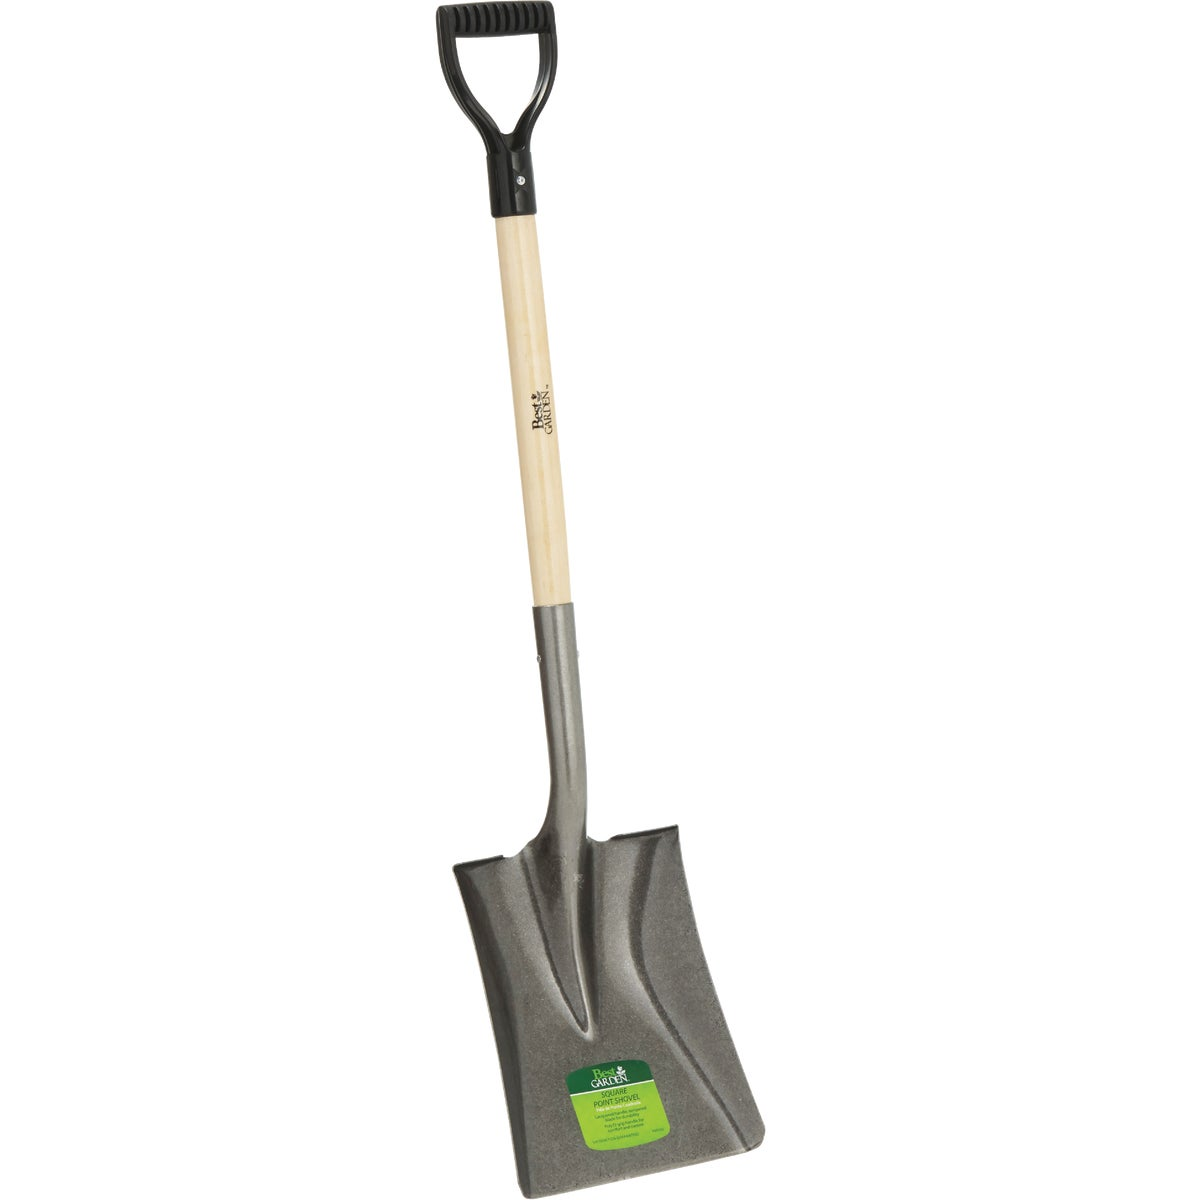 SQ PT WOOD D-HDL SHOVEL